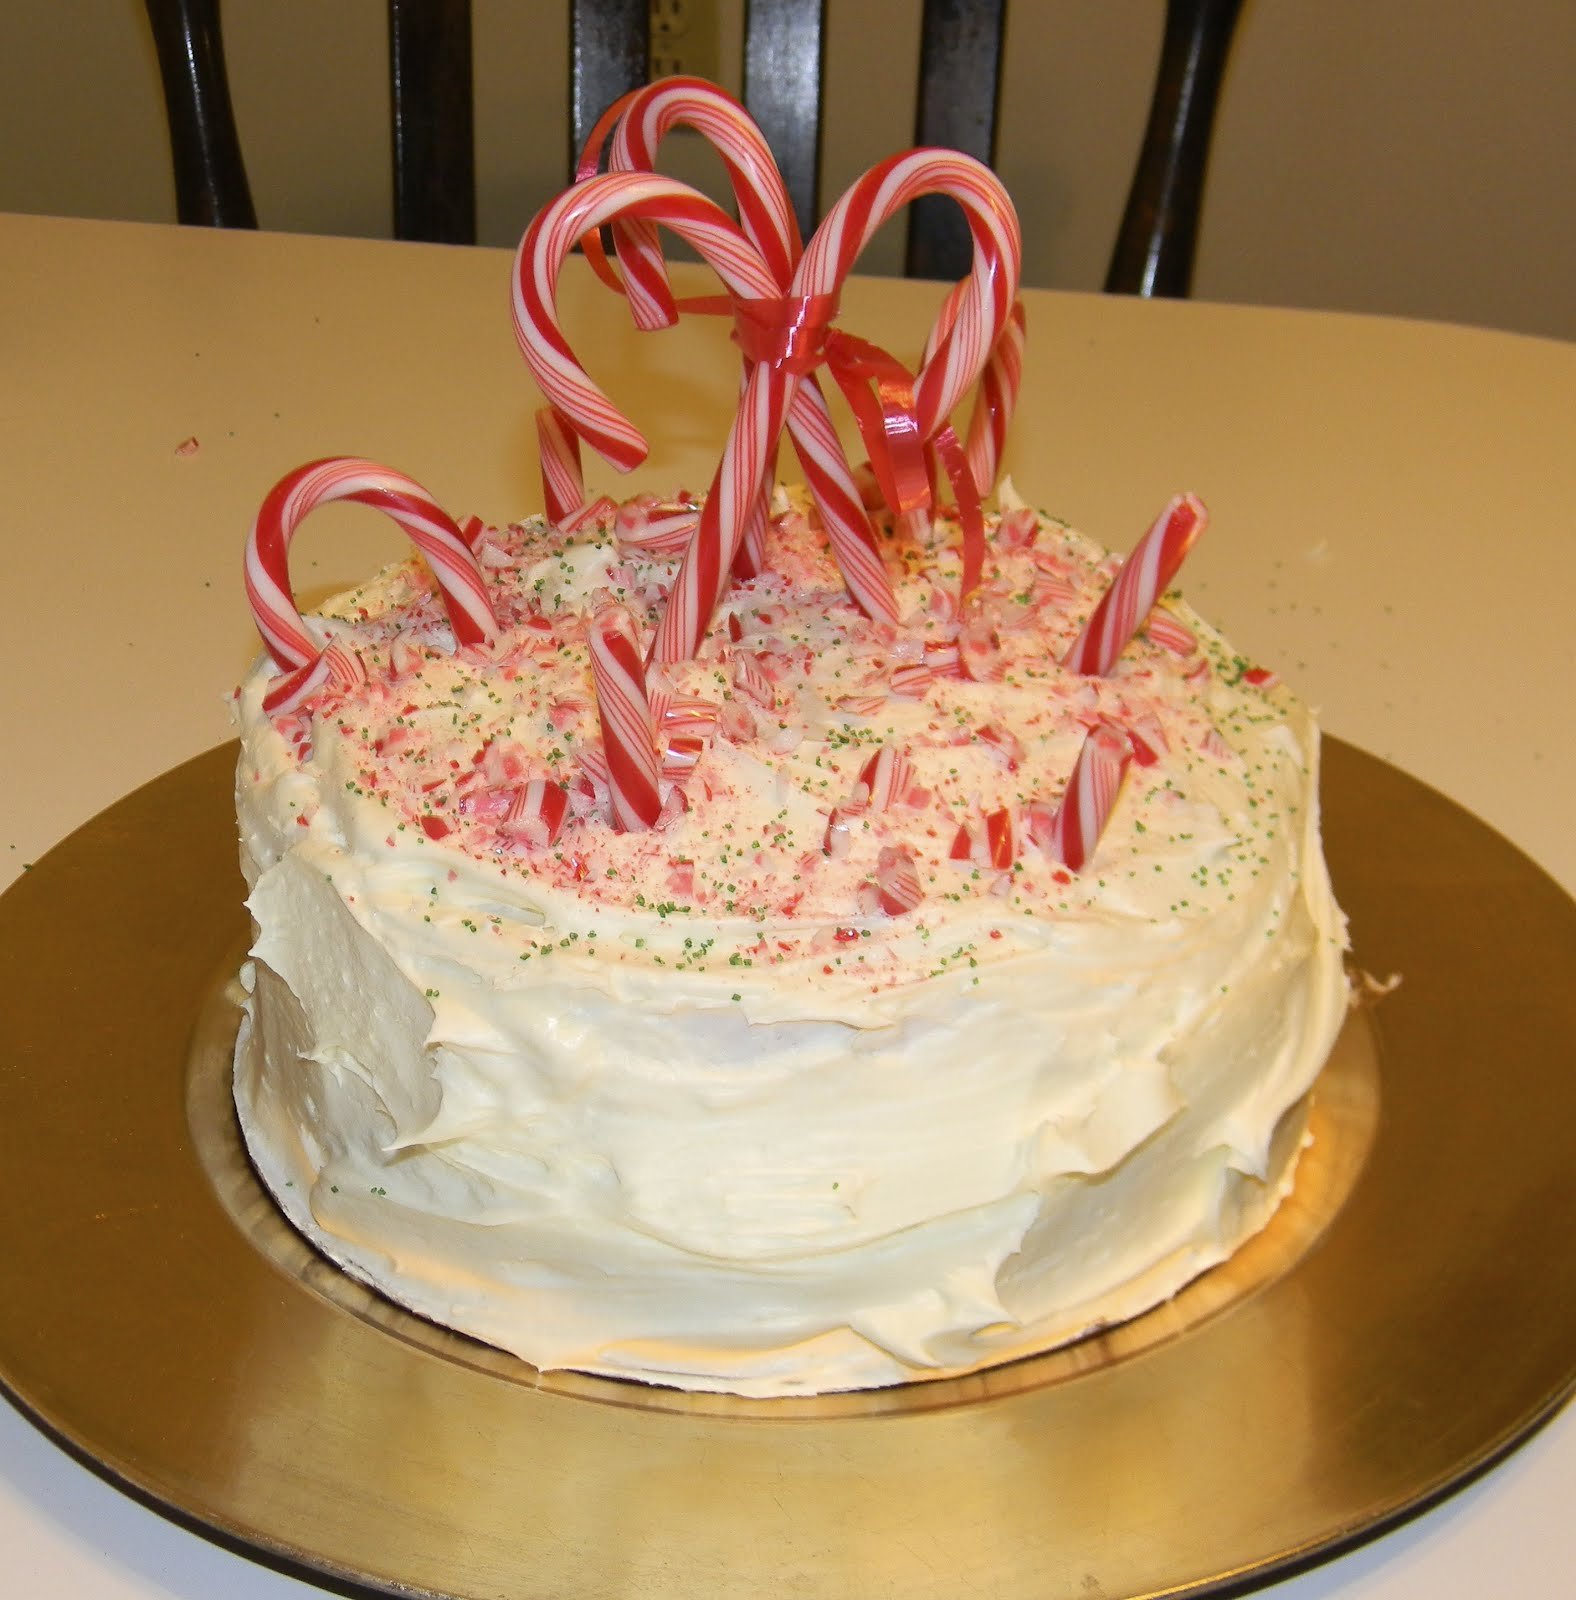 Christmas Cake Decorating Step By Step : Step by Step in the kitchen: Candy Cane Cake for Christmas!